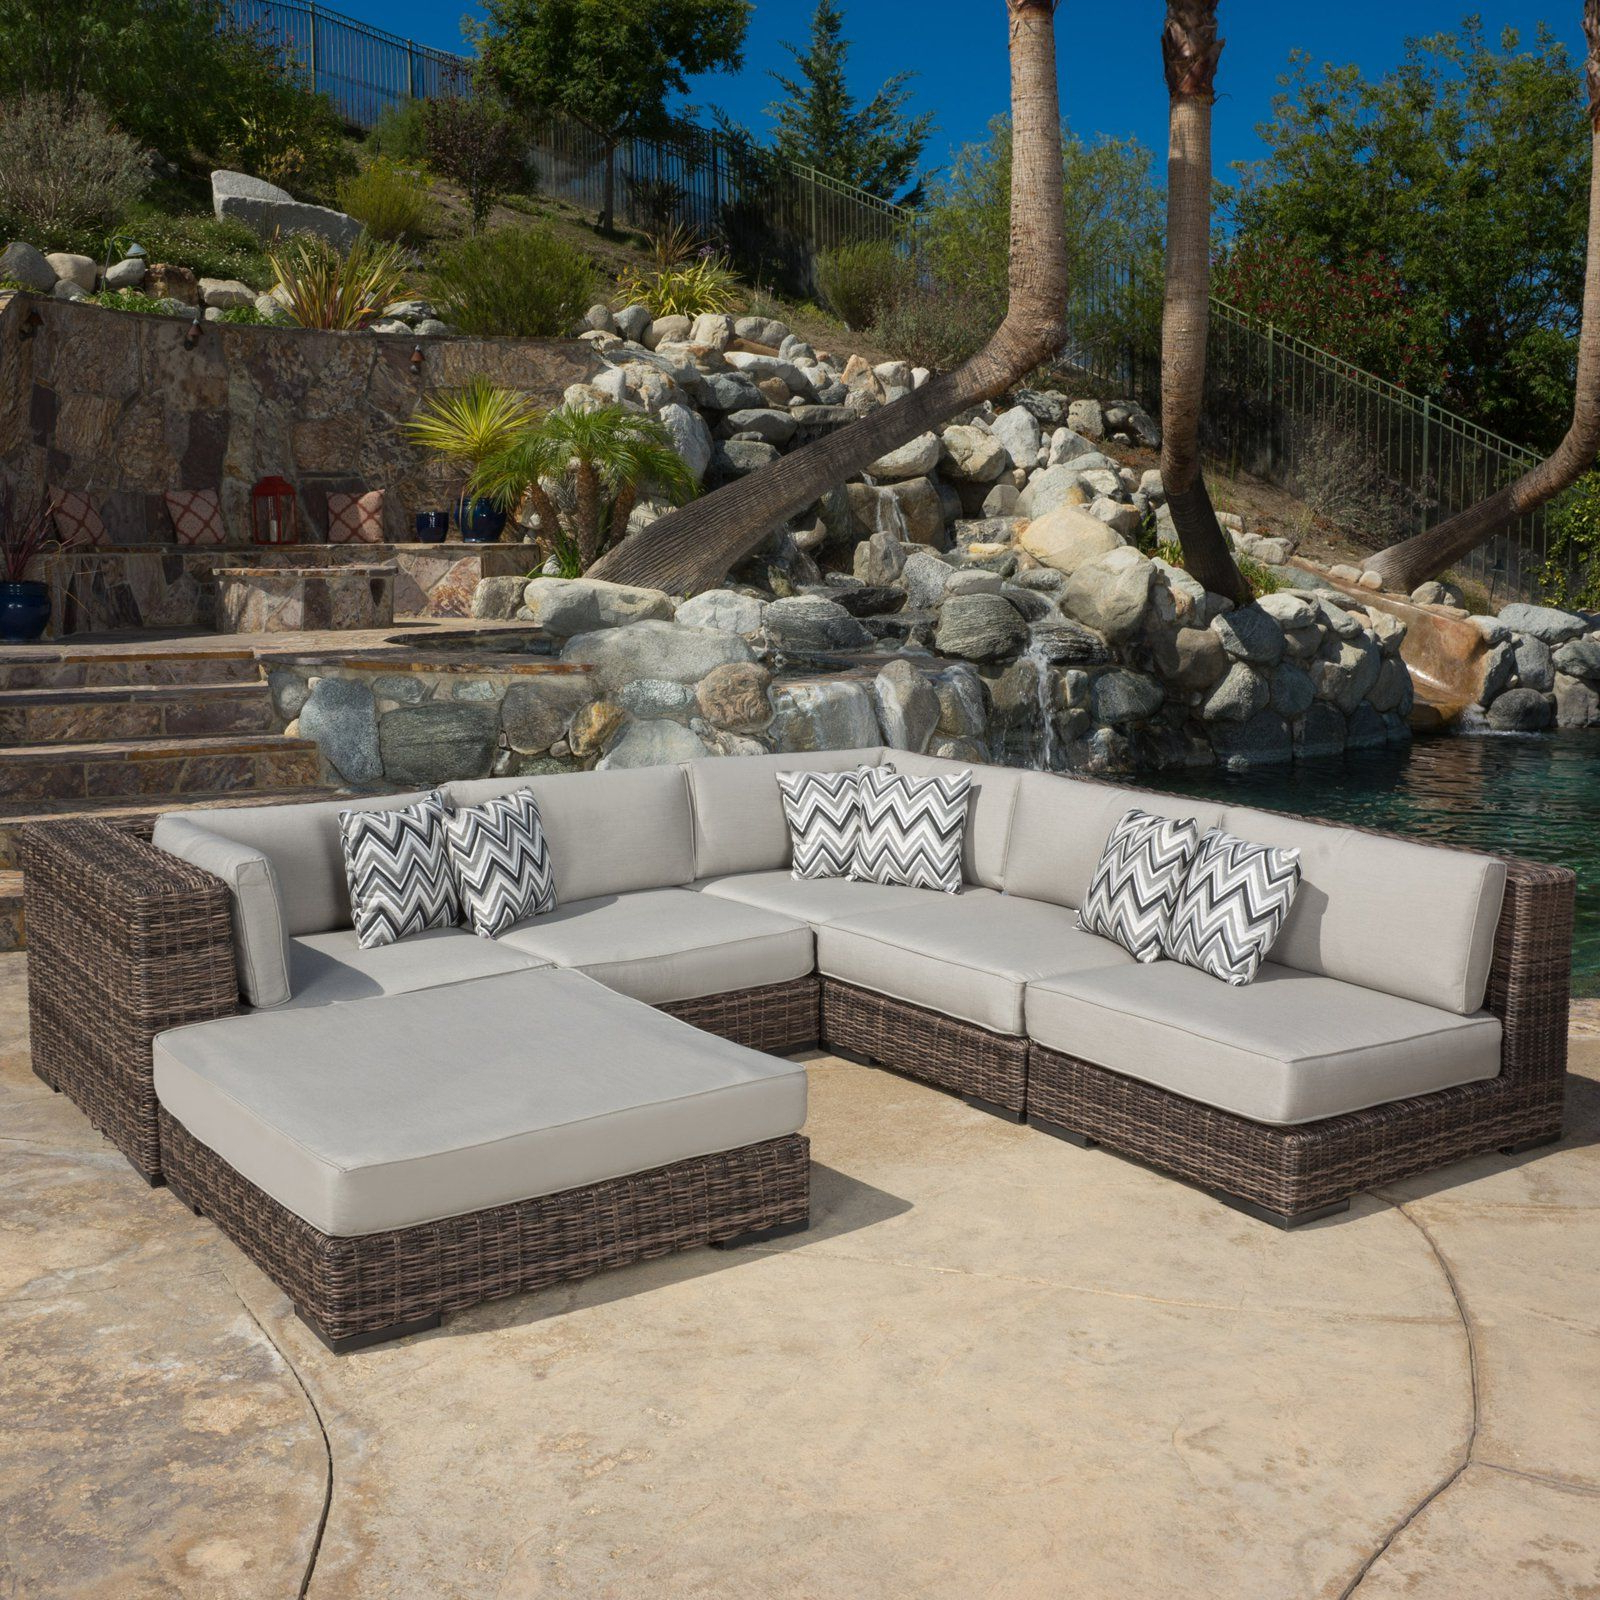 Burruss Patio Sectionals With Cushions Within Newest Outdoor Prestley 6 Piece Sectional Sofa Set With Sunbrella (View 21 of 25)